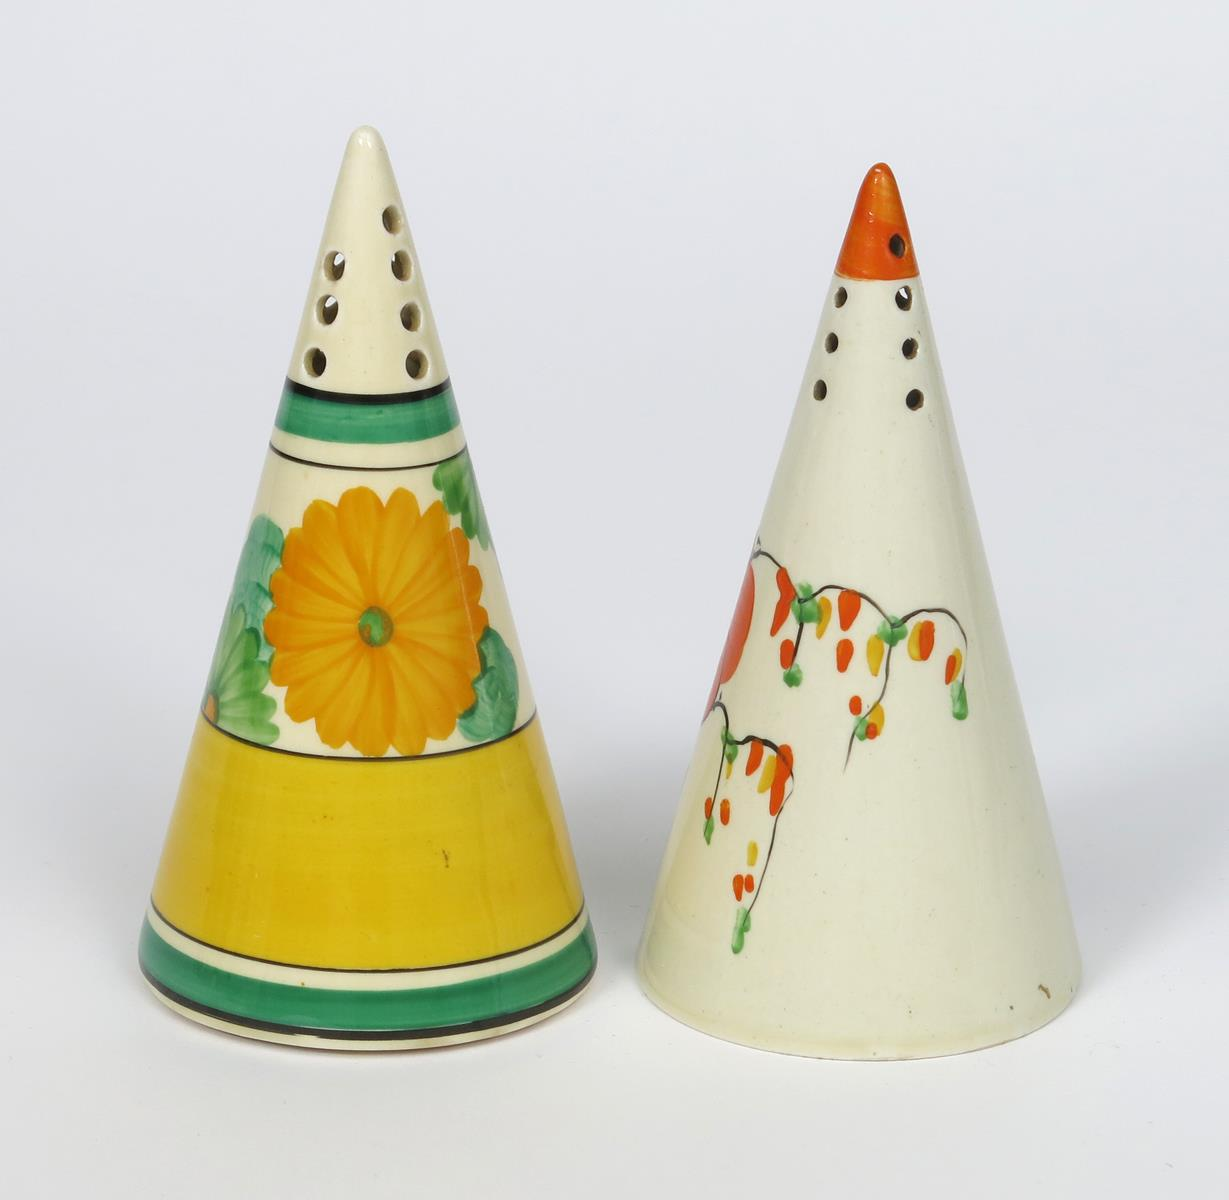 'Sun-gay' a Clarice Cliff Bizarre Conical sugar sifter, painted in colours and a Honeyglaze - Image 2 of 2